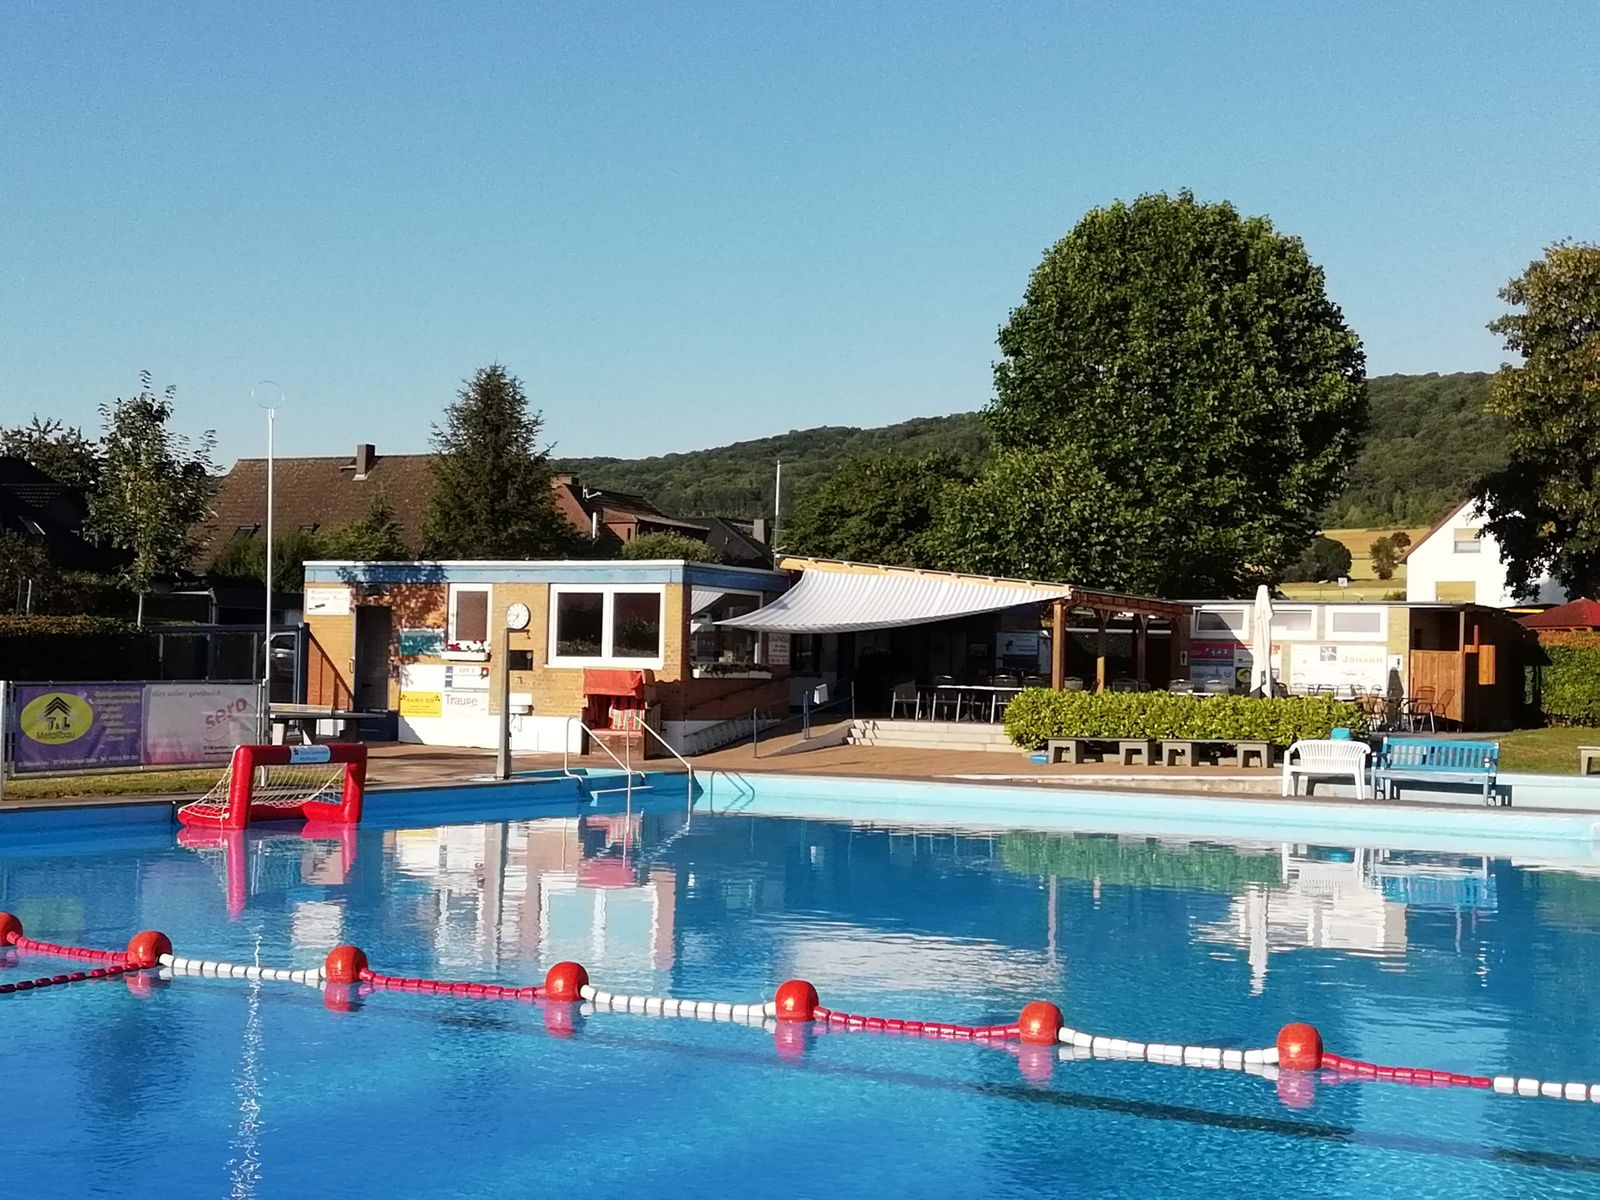 Freibad Sudheim (Do, 09.07.2020)